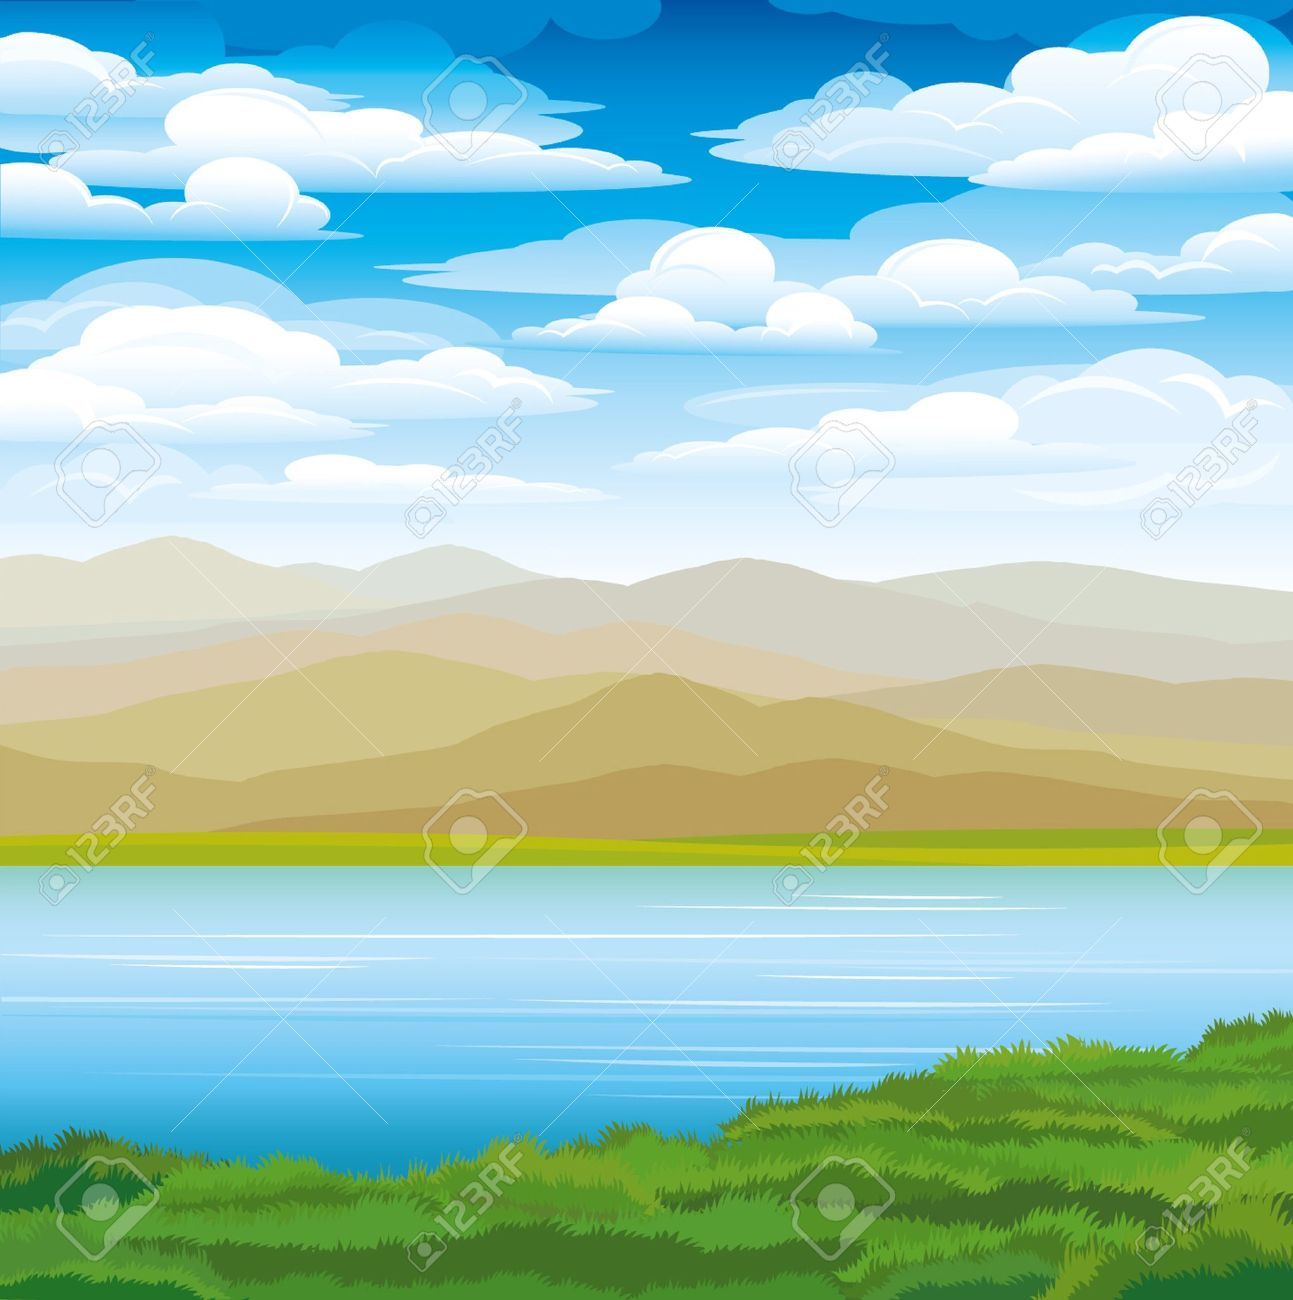 Lake Clipart to Download.